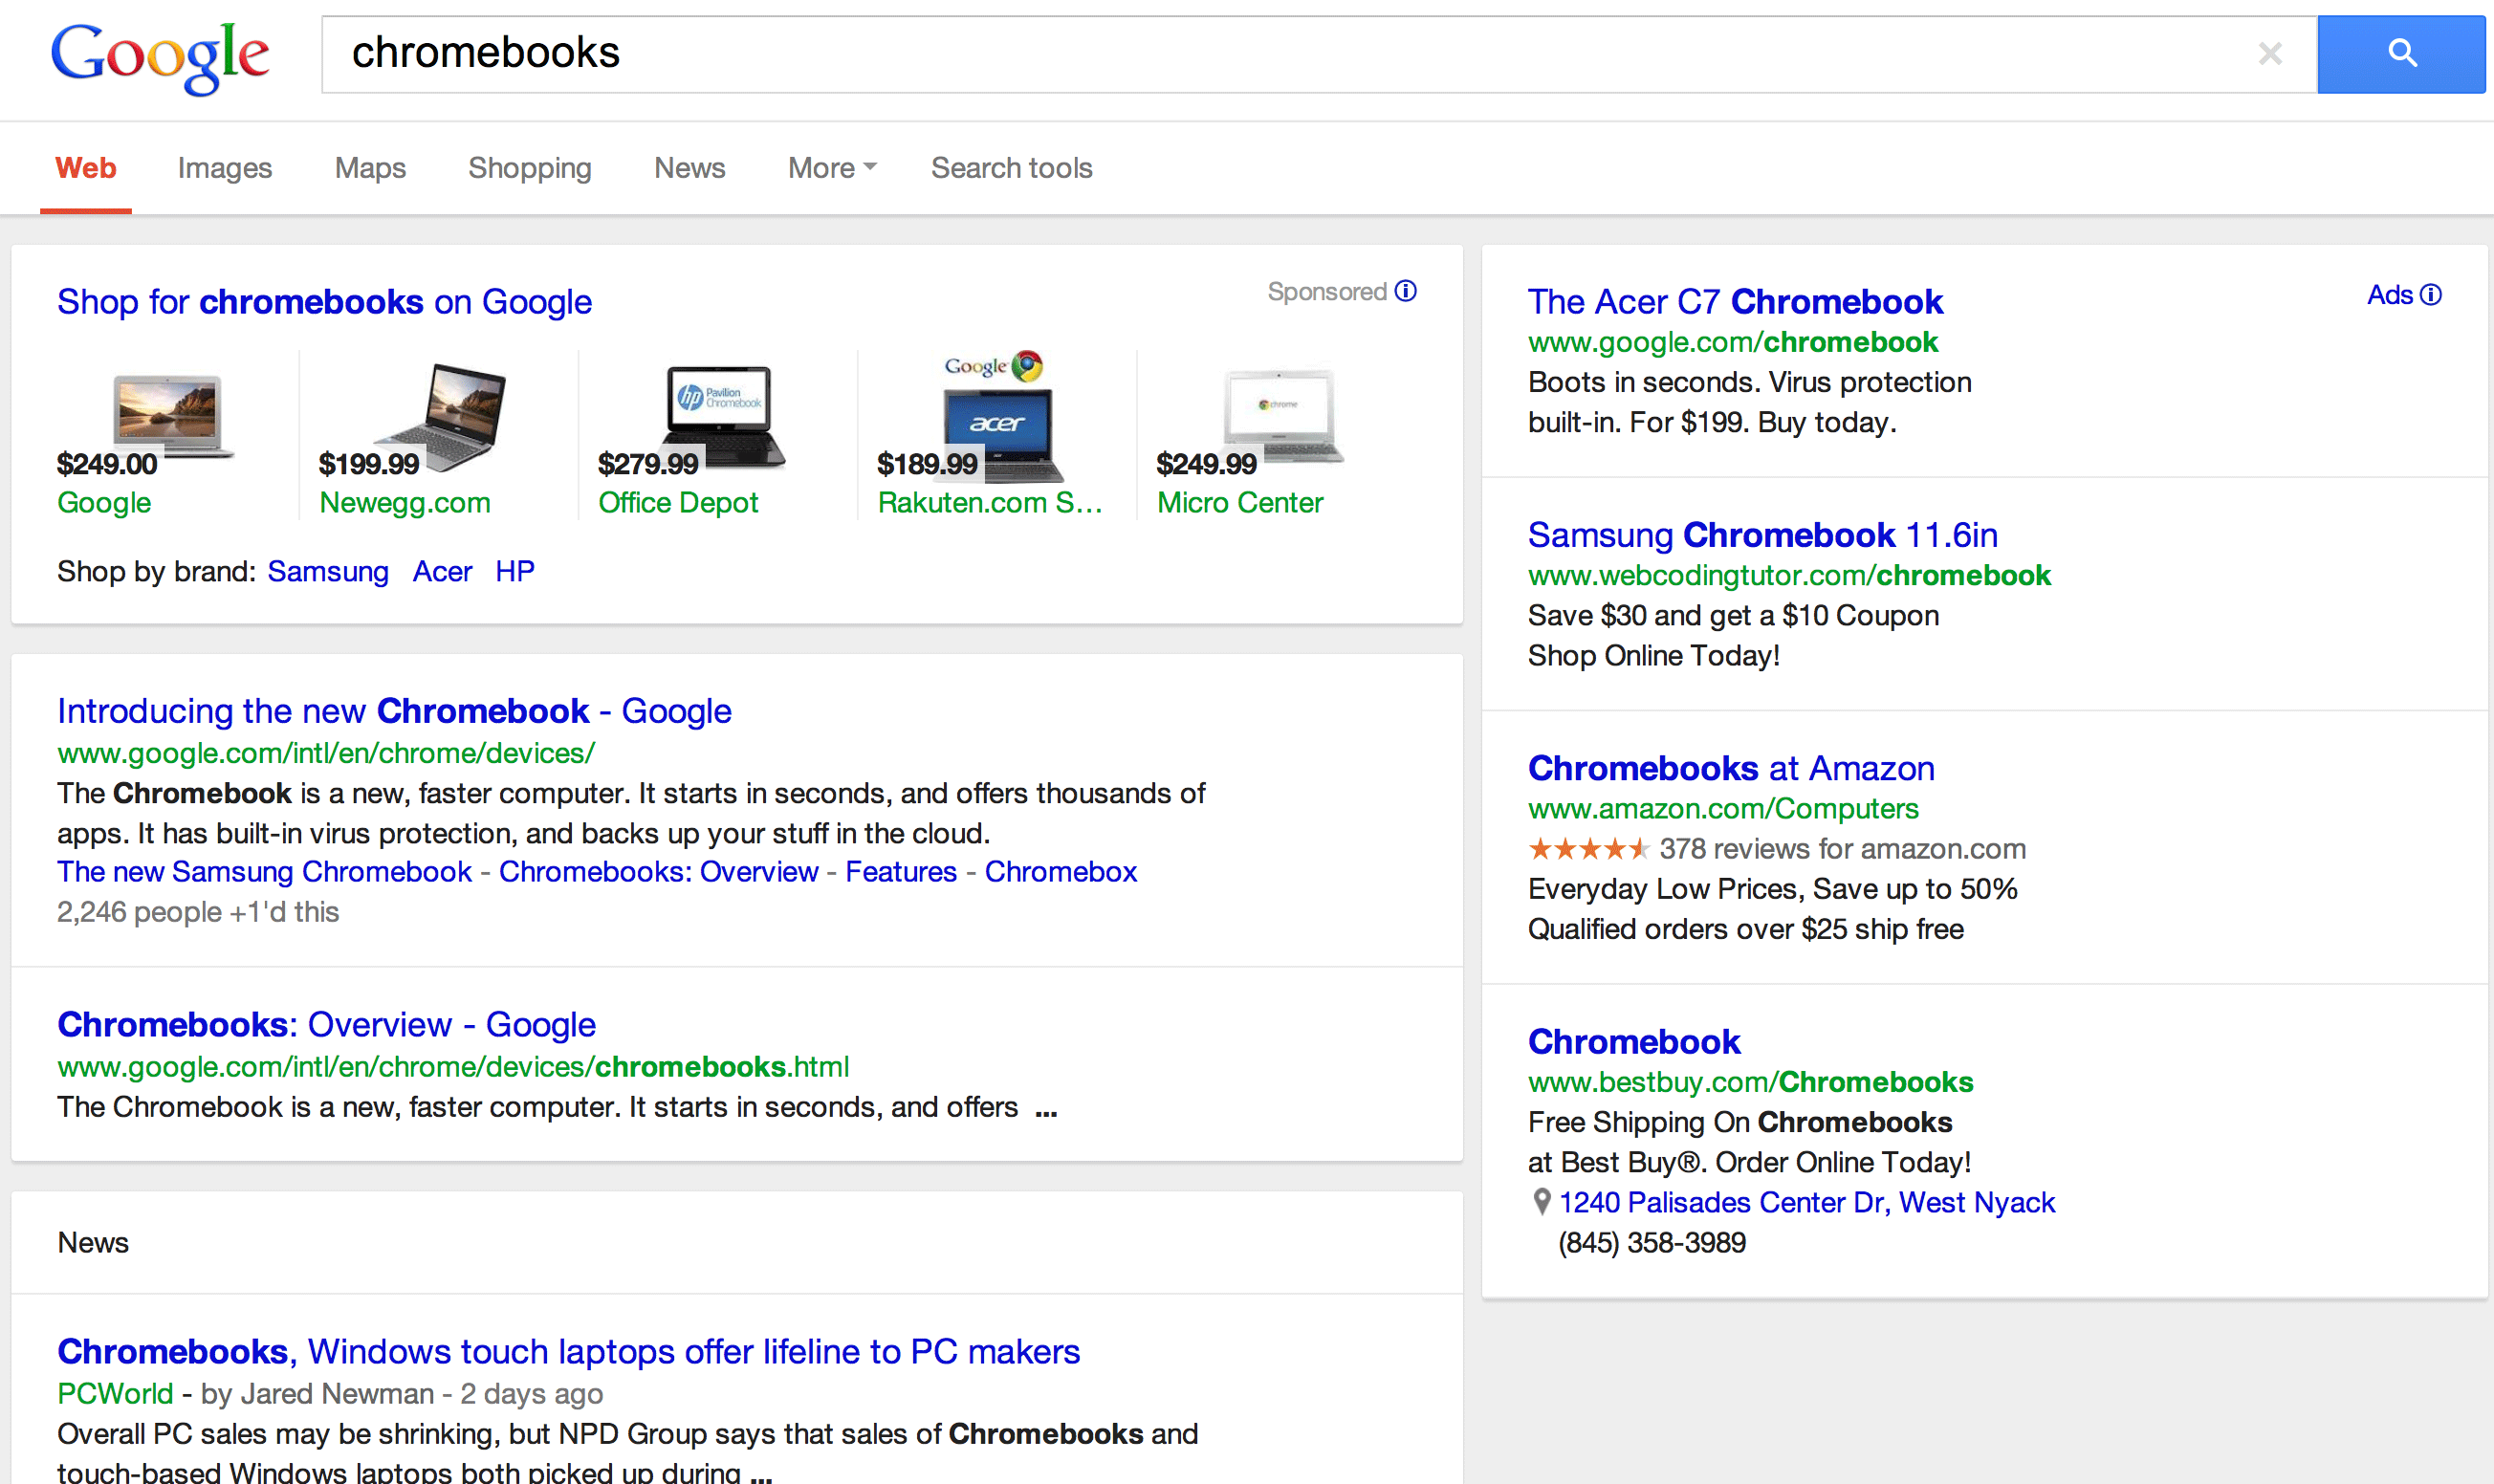 Google search is now being optimized for tablets